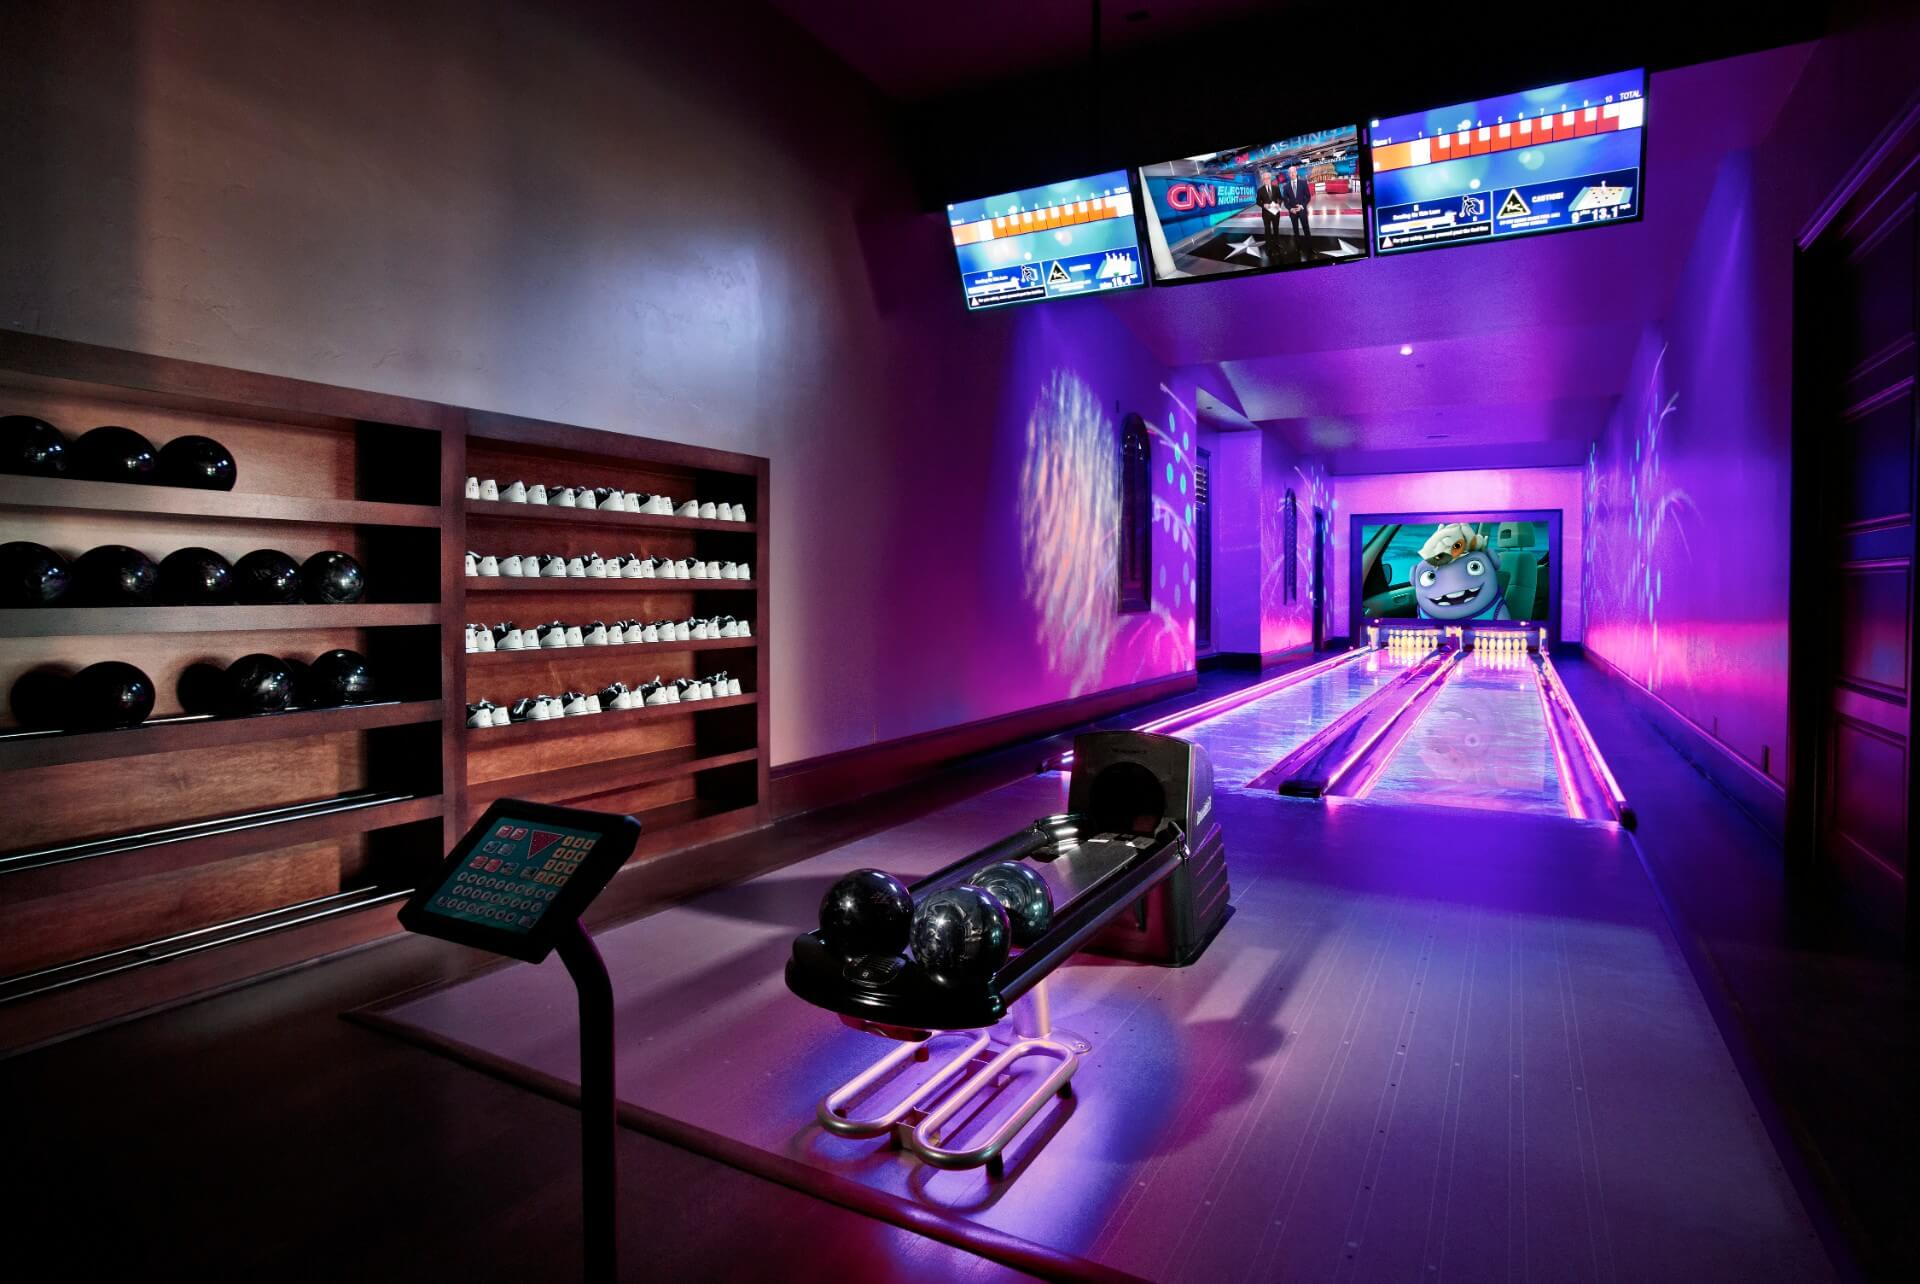 westlake lanes bowling The corner alley is the ultimate entertainment destination with state-of-the-art bowling, delicious meals, an expansive drink selection, and a modern atmosphere full of fun and energy, you'll always enjoy rolling with us.